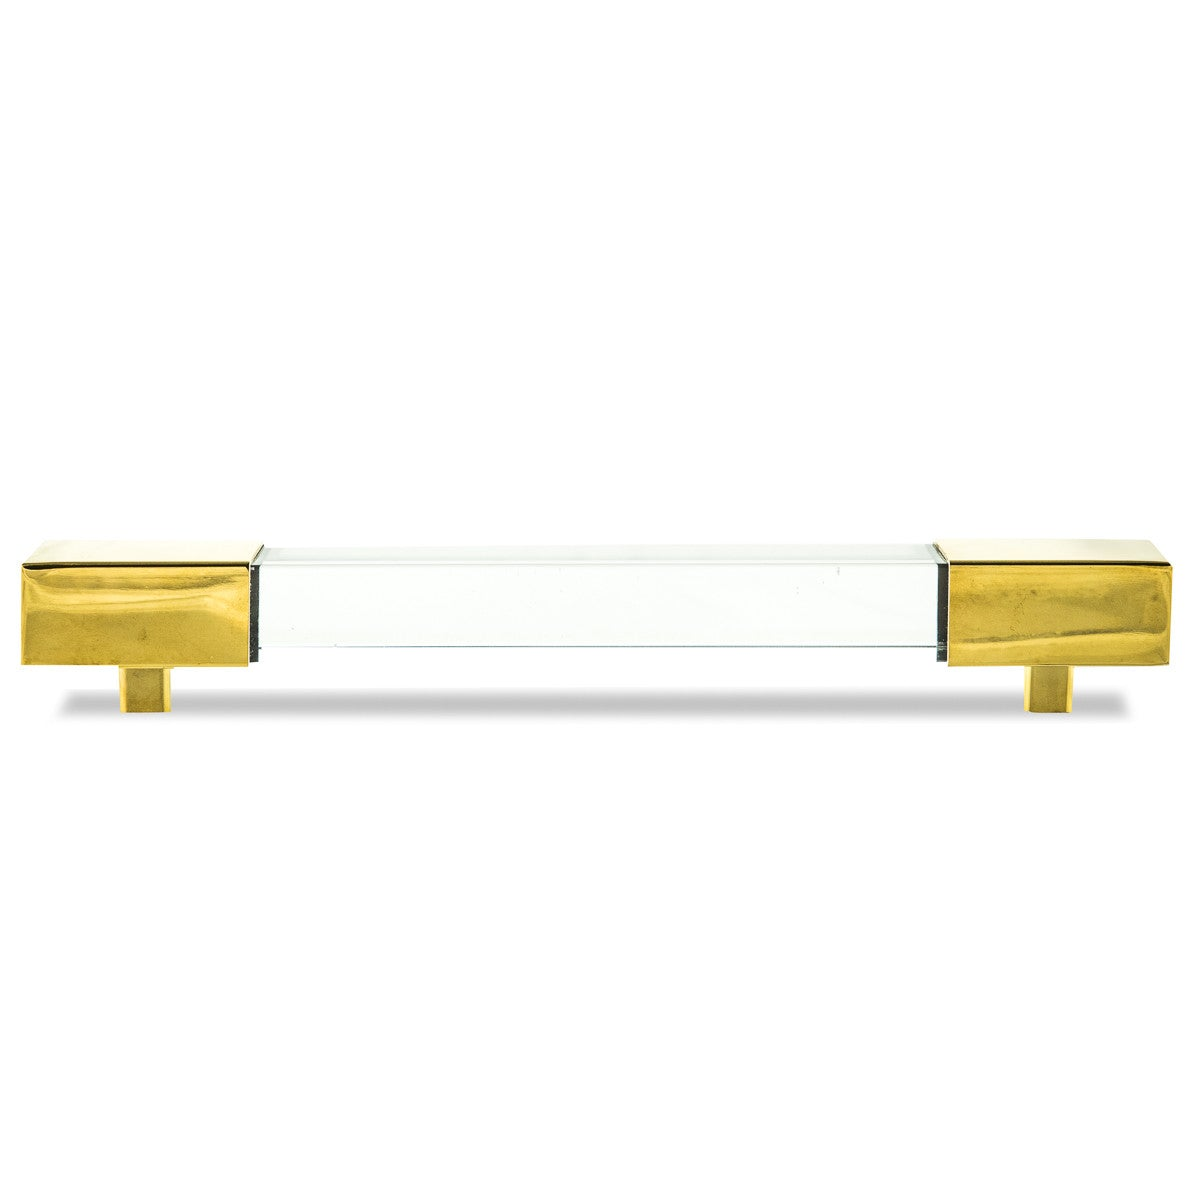 Square Lucite and Brass or Chrome Bar Pull set of 2 - ModShop1.com